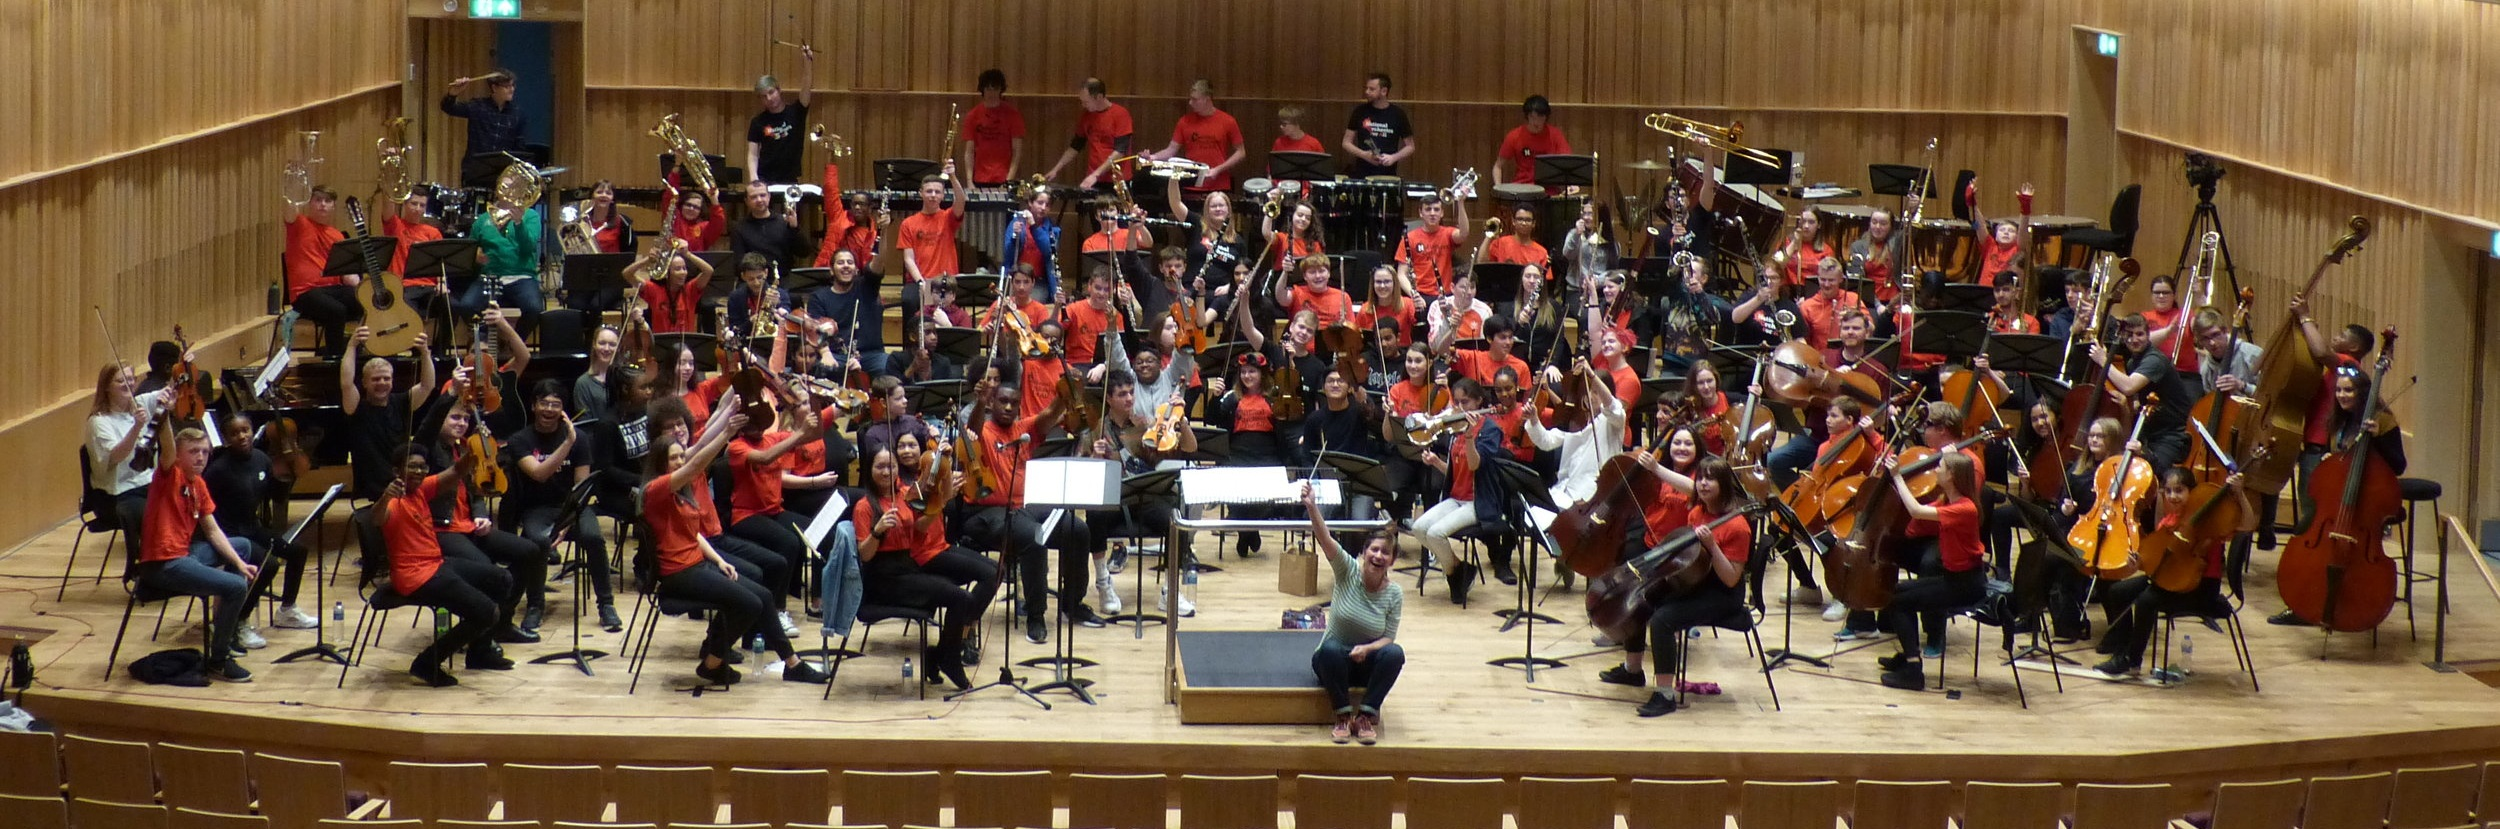 The National Orchestra for All on stage at the Royal Birmingham Conservatoire